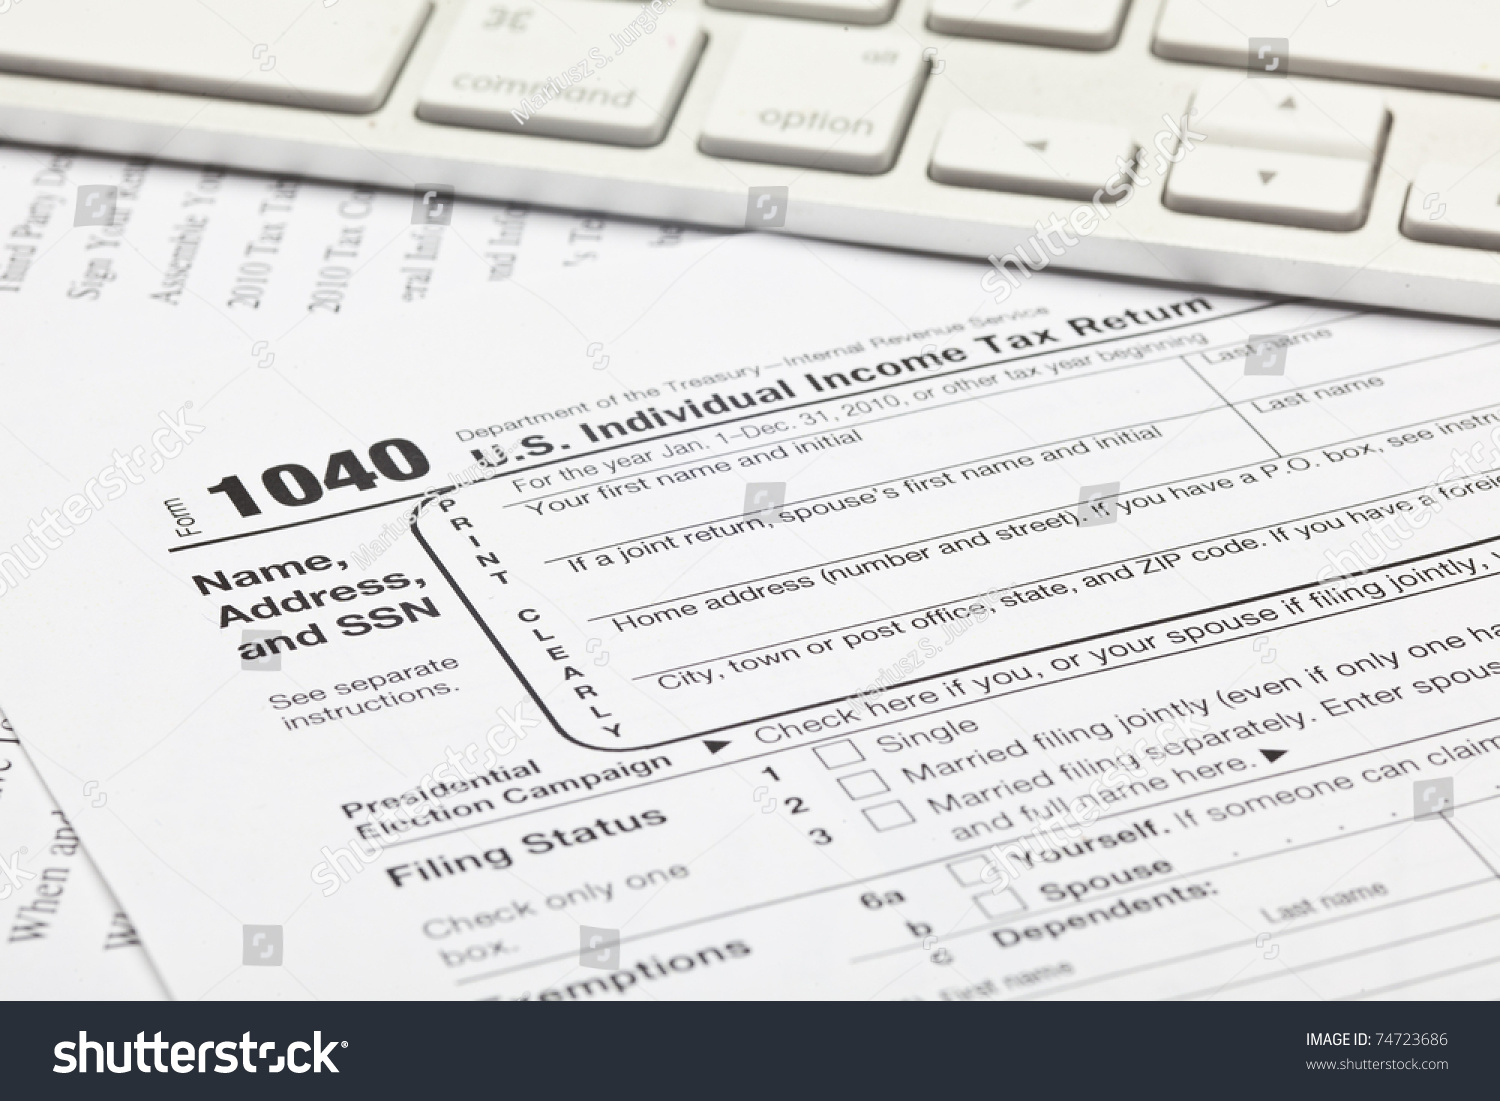 Income Tax Form 1040 Image Collections Free Form Design Examples